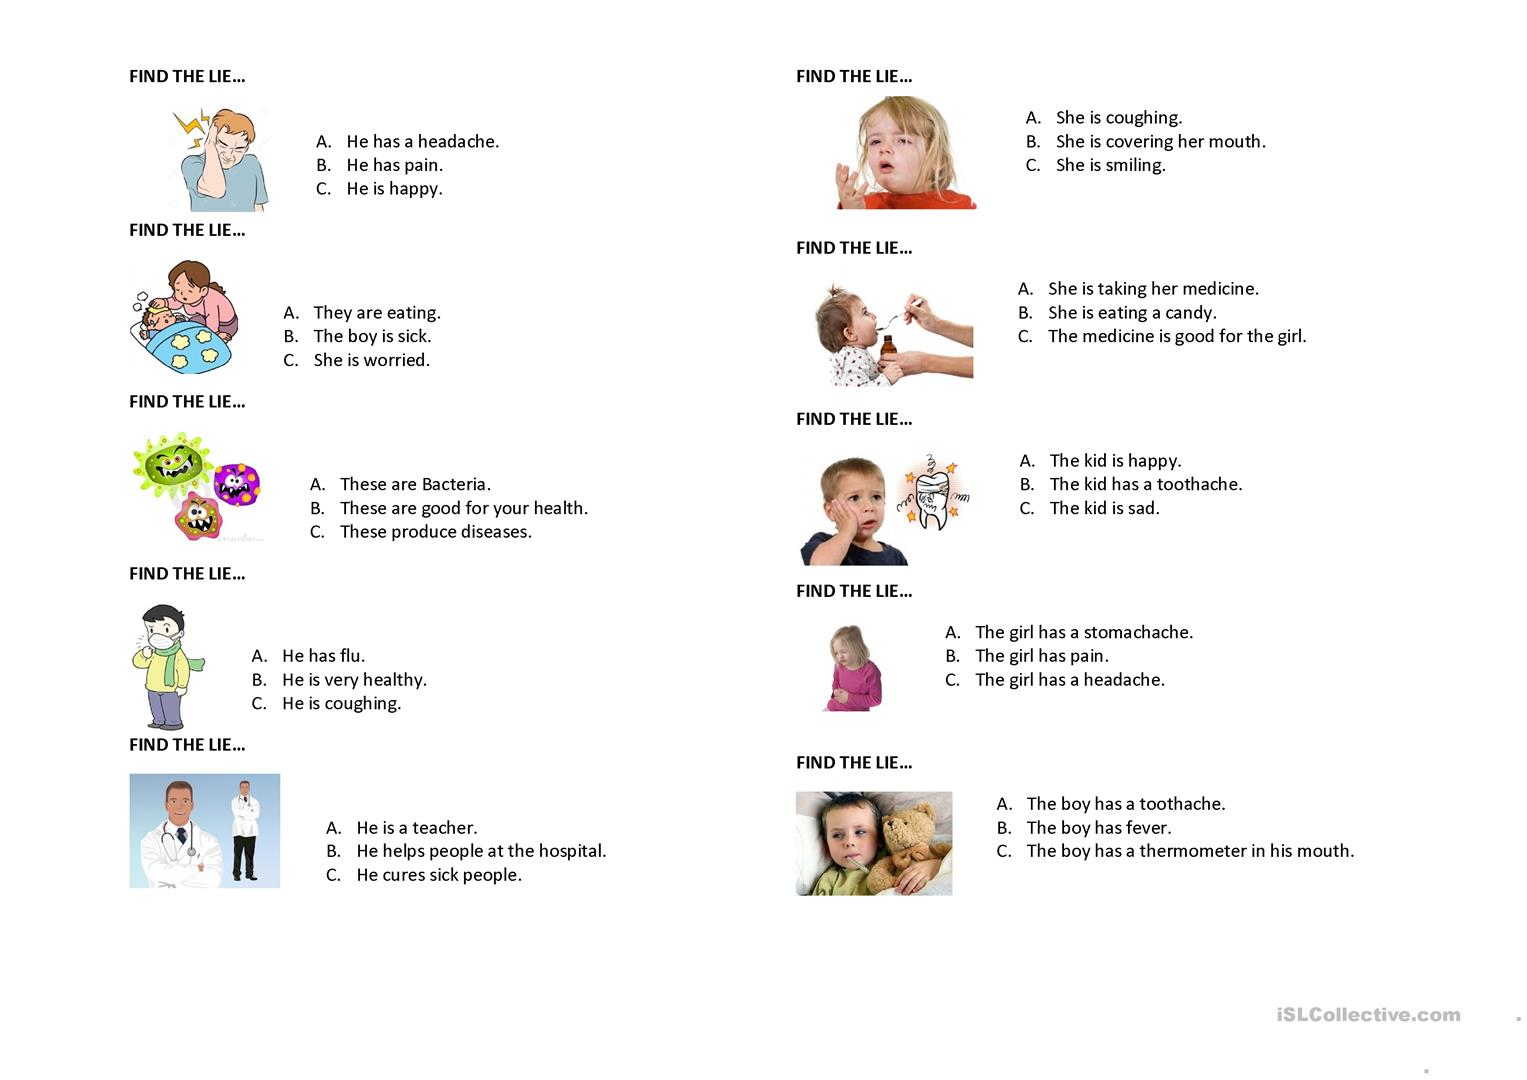 Find The Lie Symptoms And Diseases Worksheet